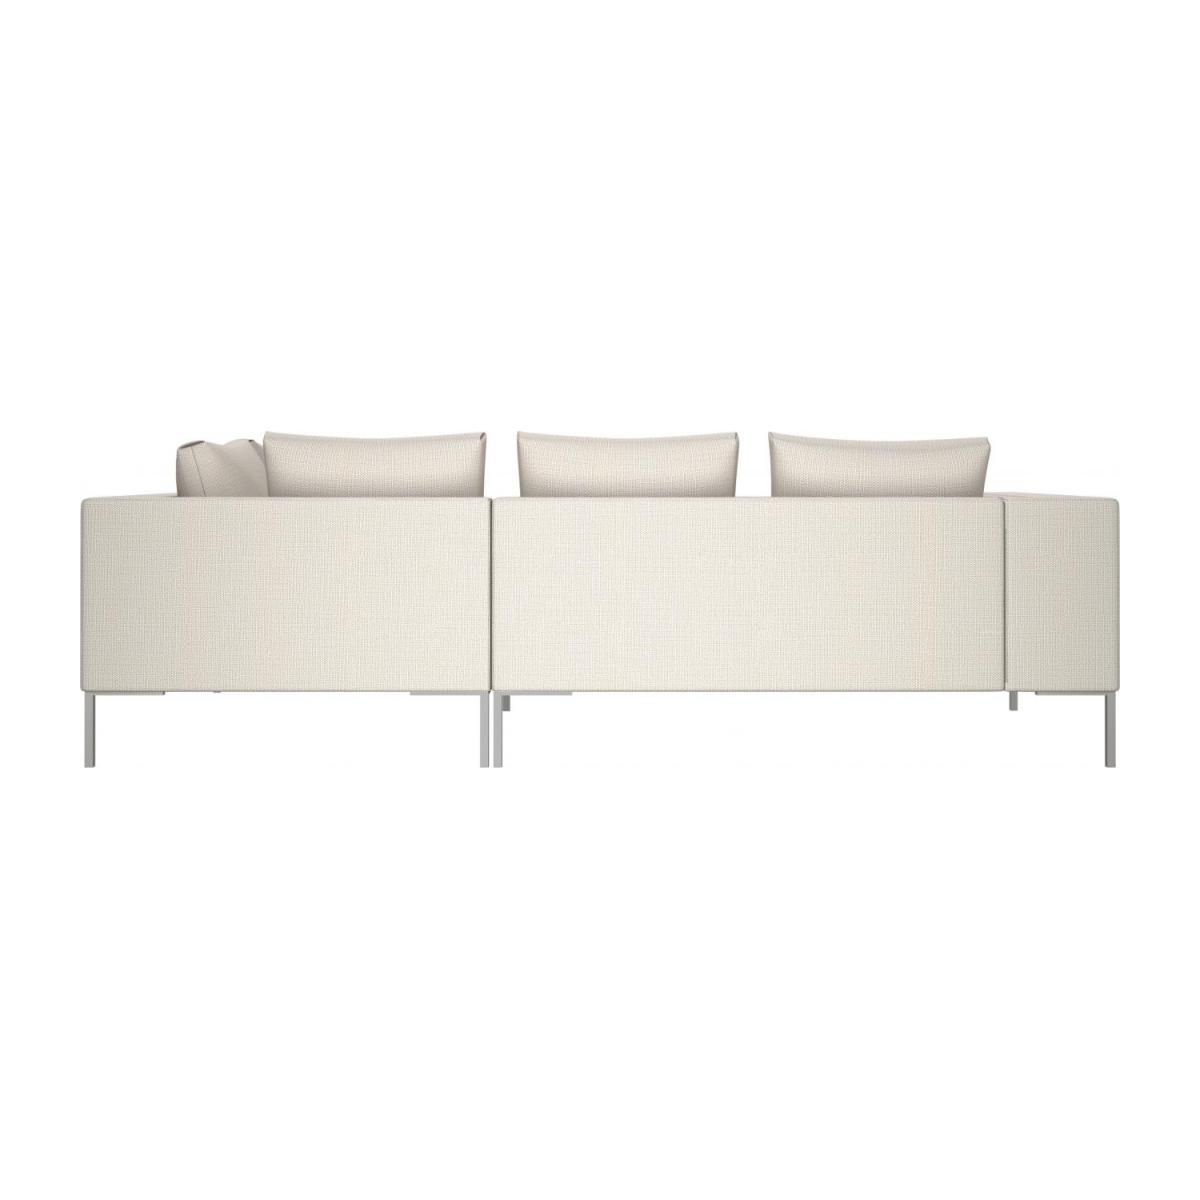 2 seater sofa with chaise longue on the right in Fasoli fabric, snow white  n°3